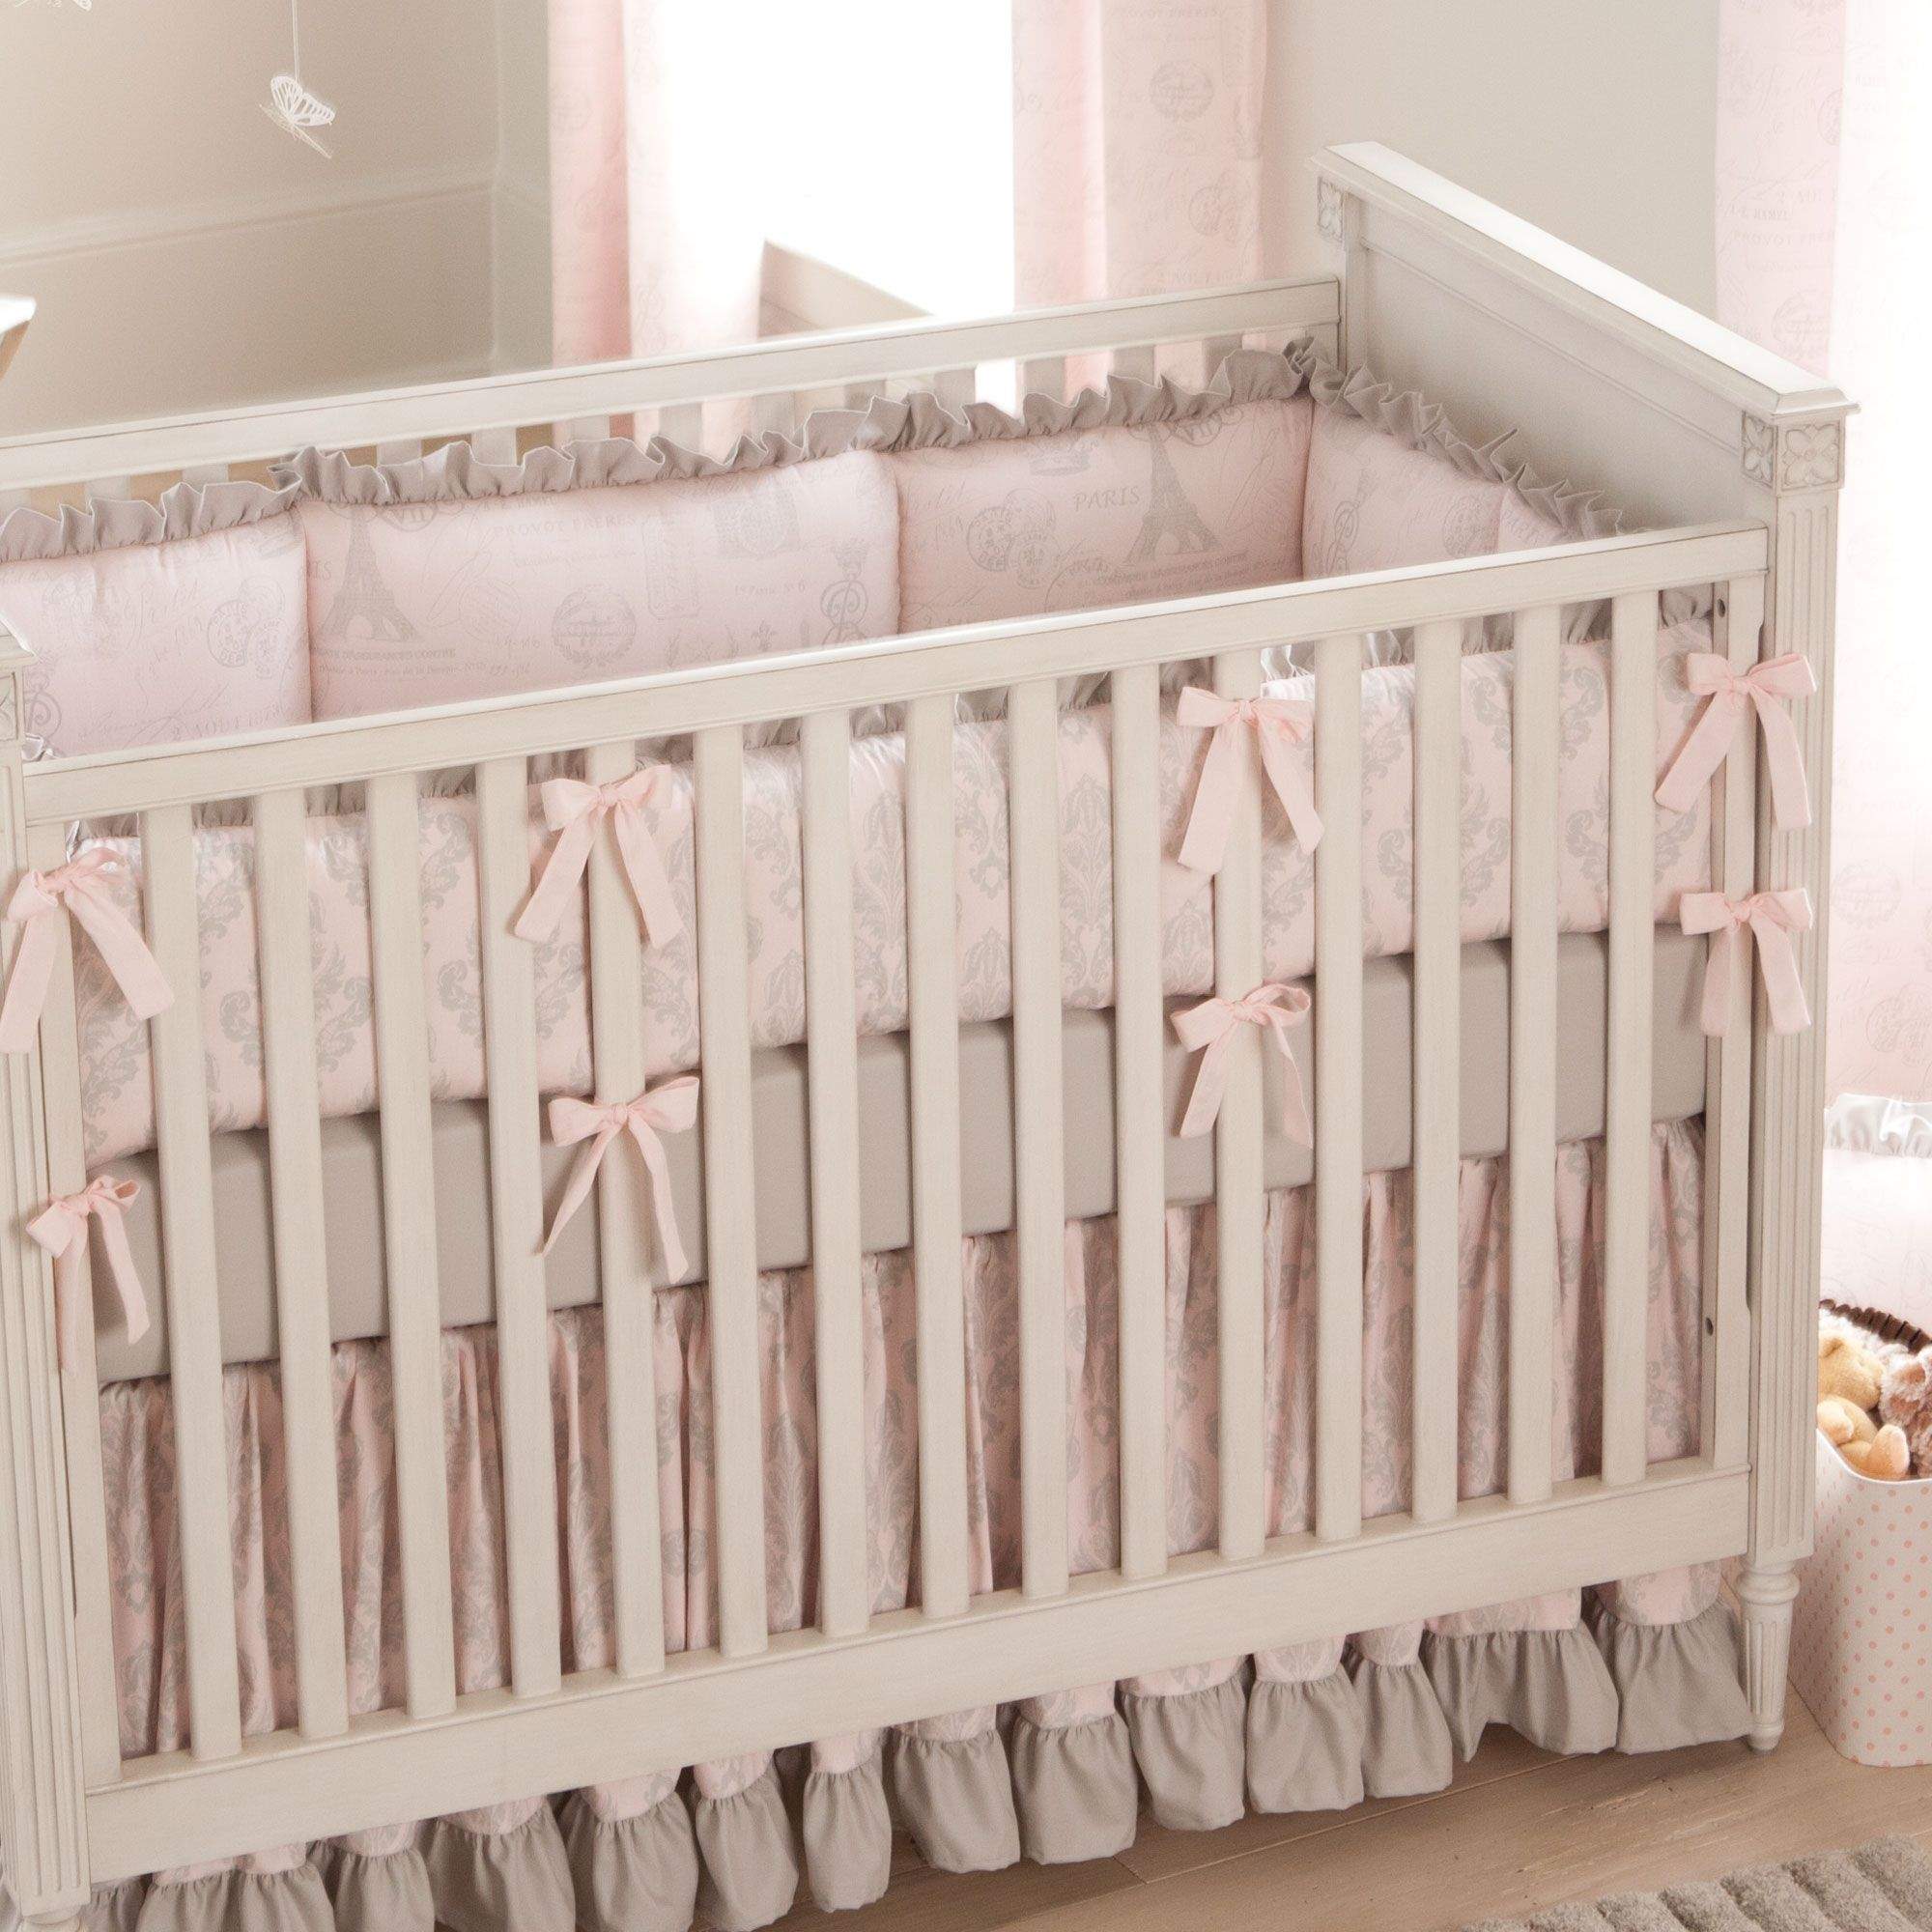 Crib bedding set gray white navy blue with by butterbeansboutique - Paris Script Crib Bedding Pink And Gray Baby Girl Crib Bedding Featuring French Damask